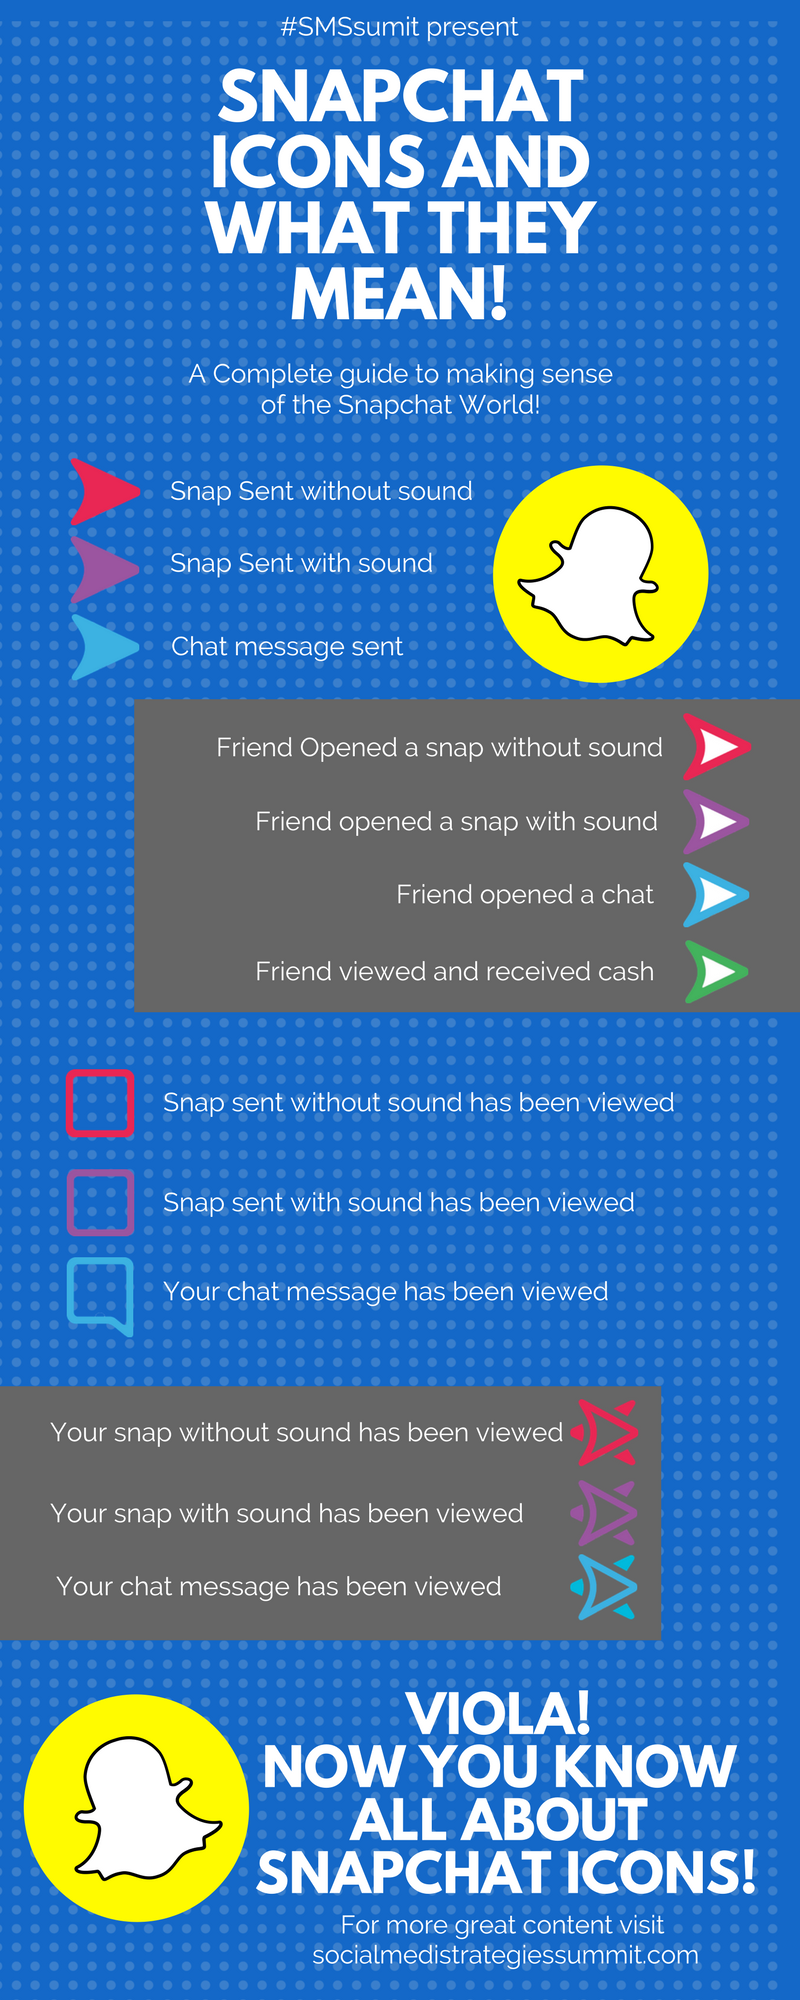 A complete guide for Snapchat Icons